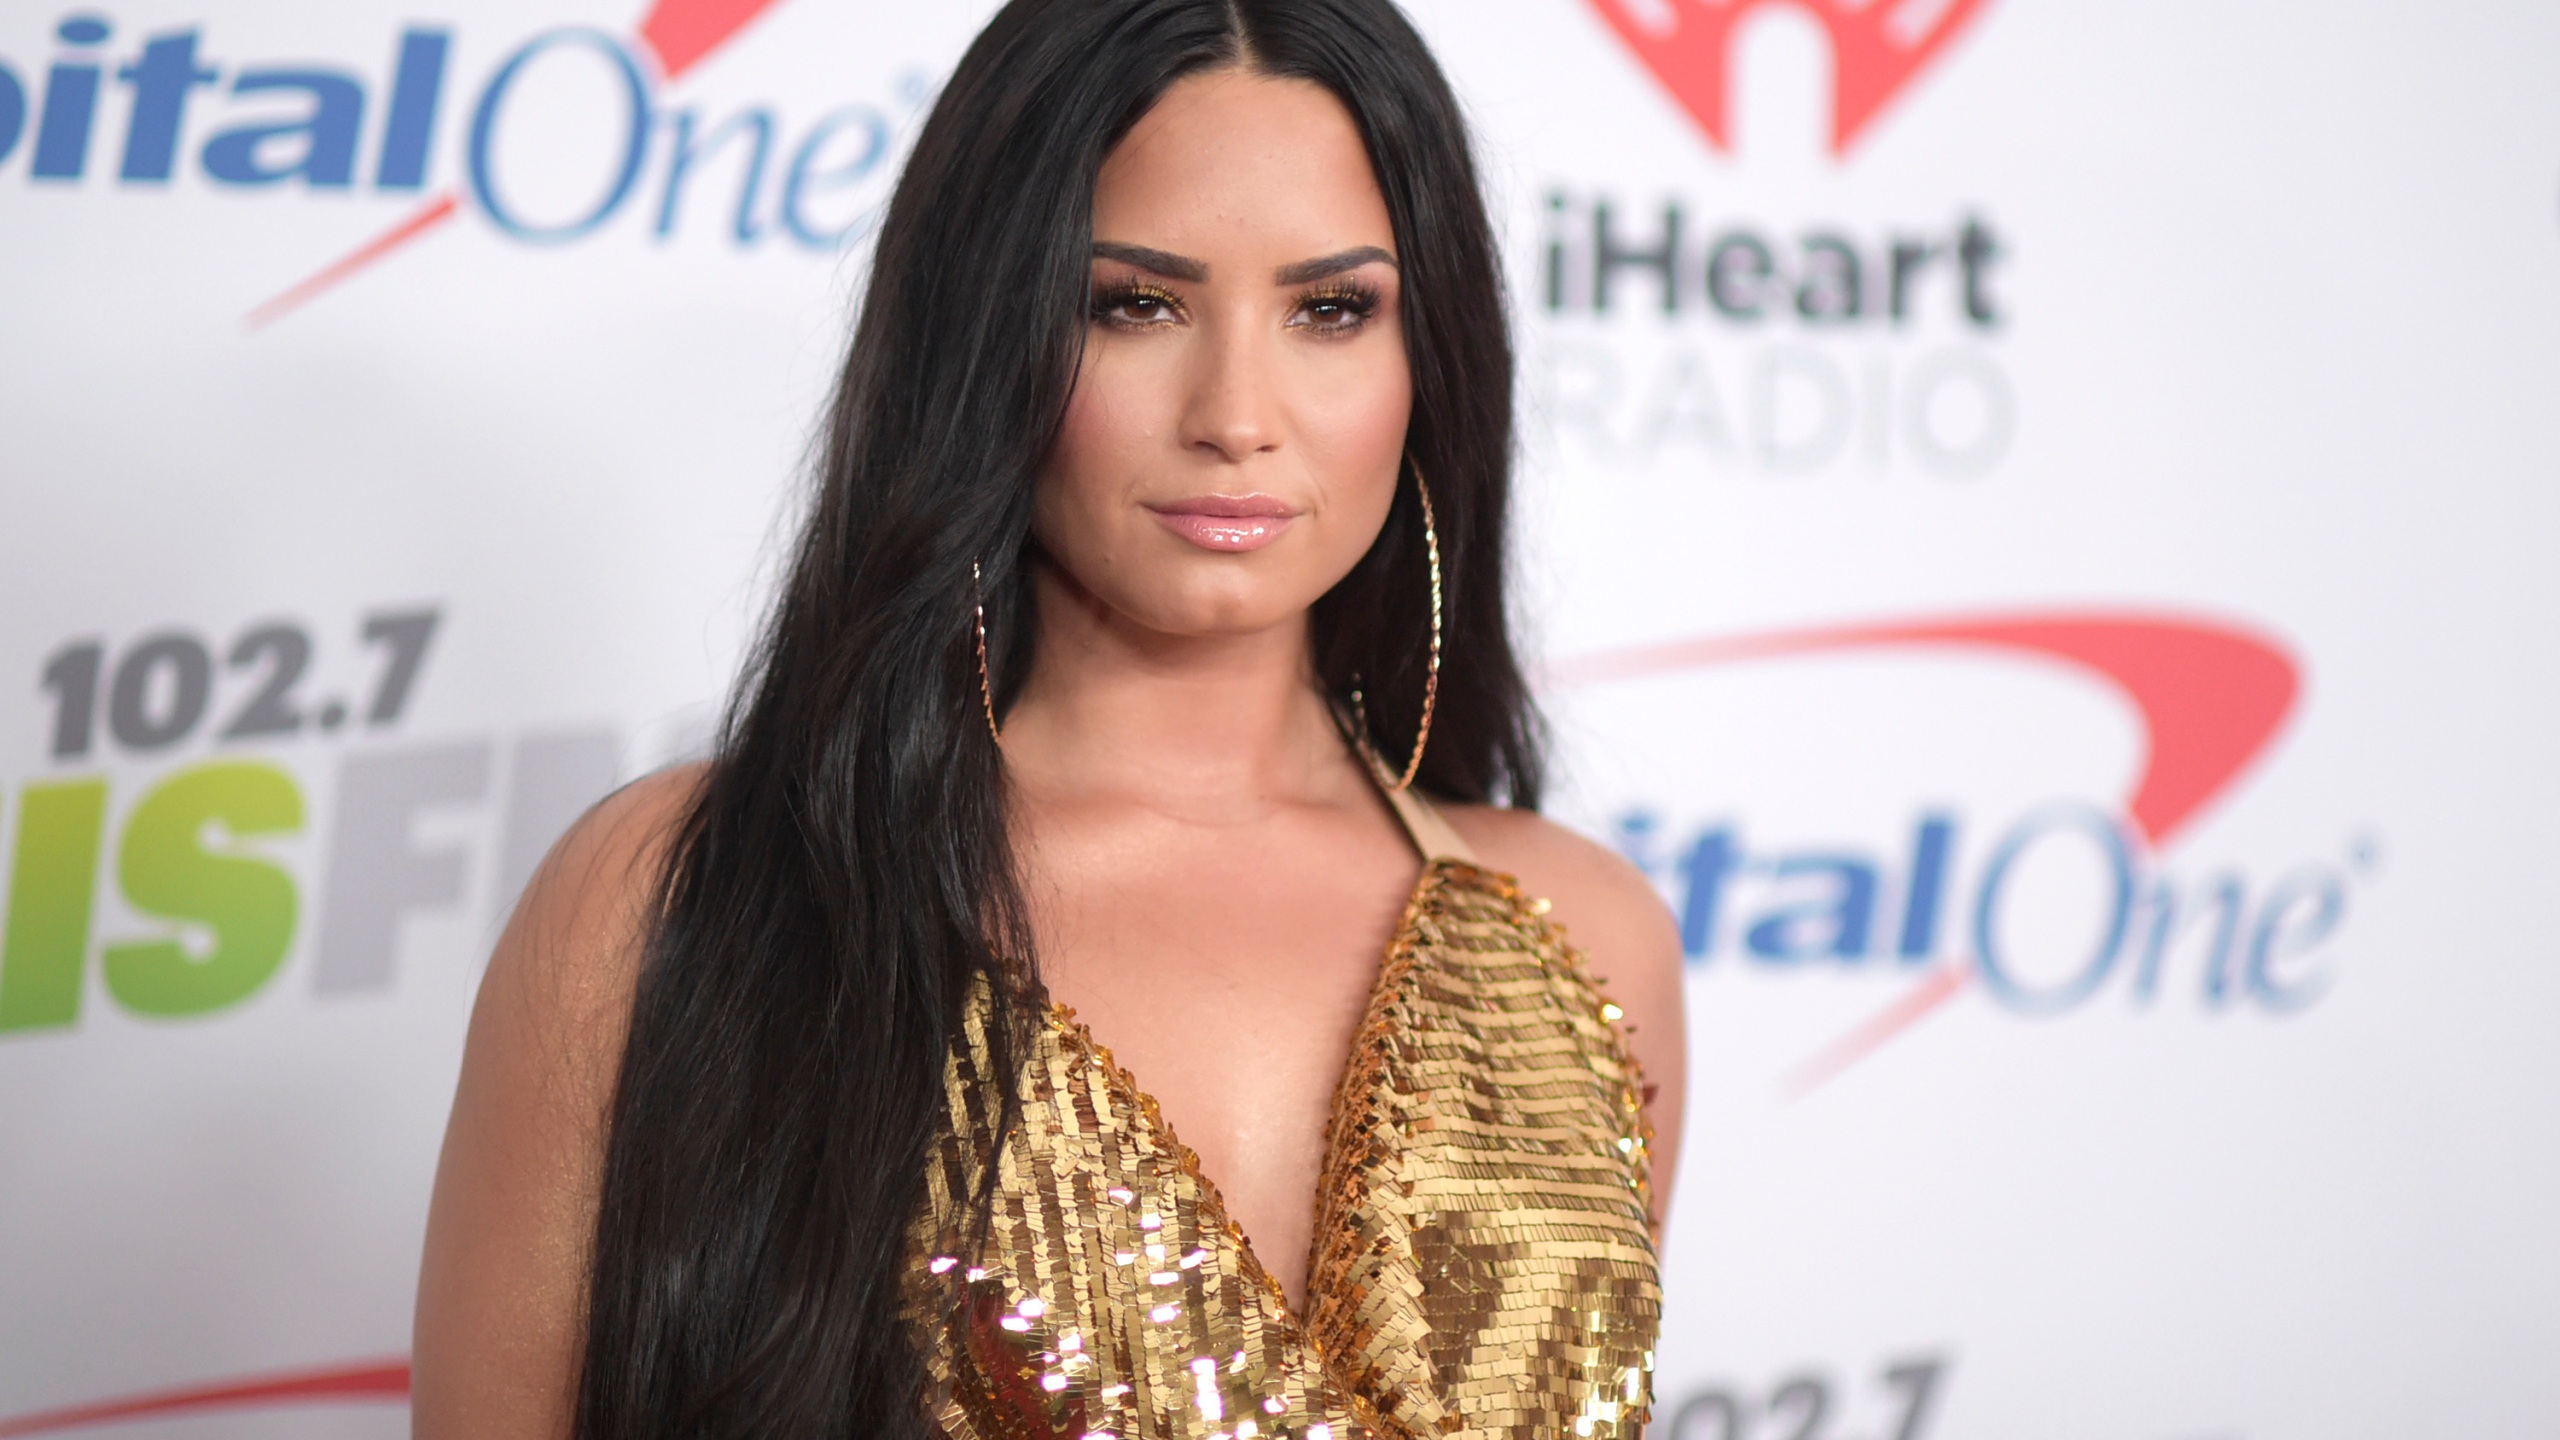 People_Demi_Lovato_16965-159532.jpg28643140